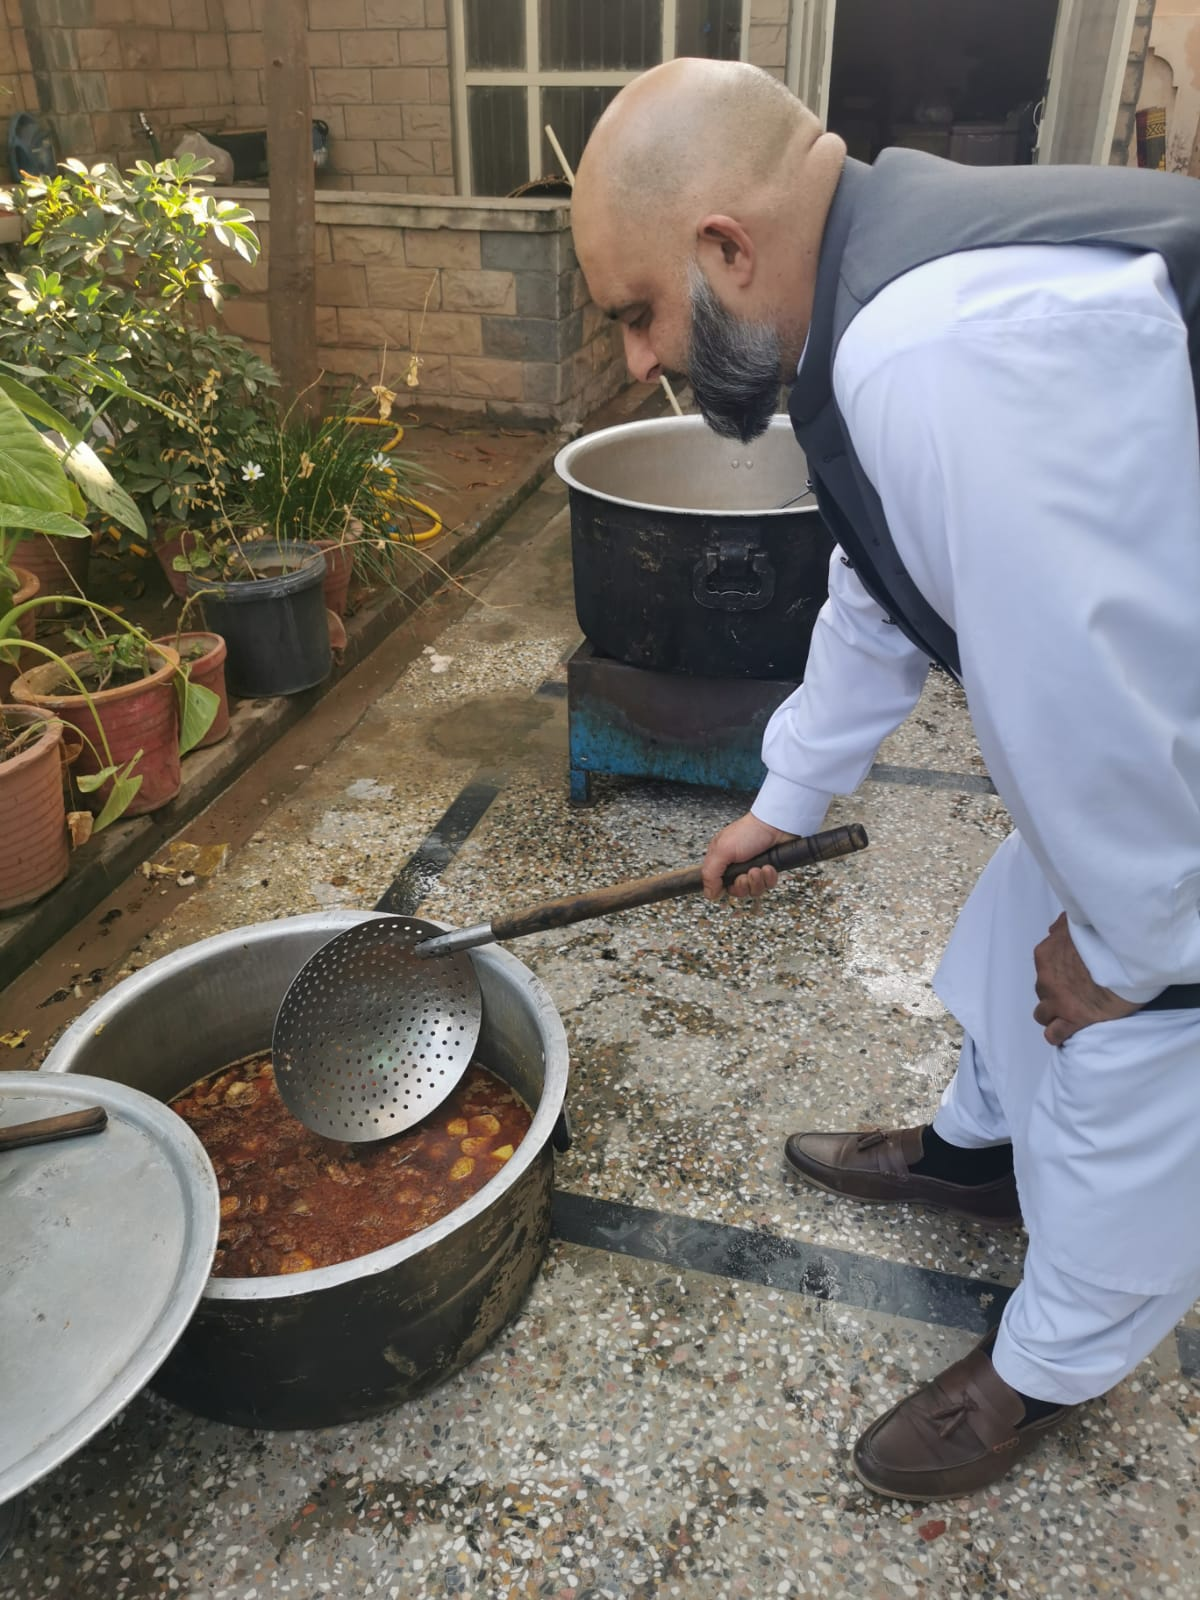 Chef Hussain cooks from Pakistan